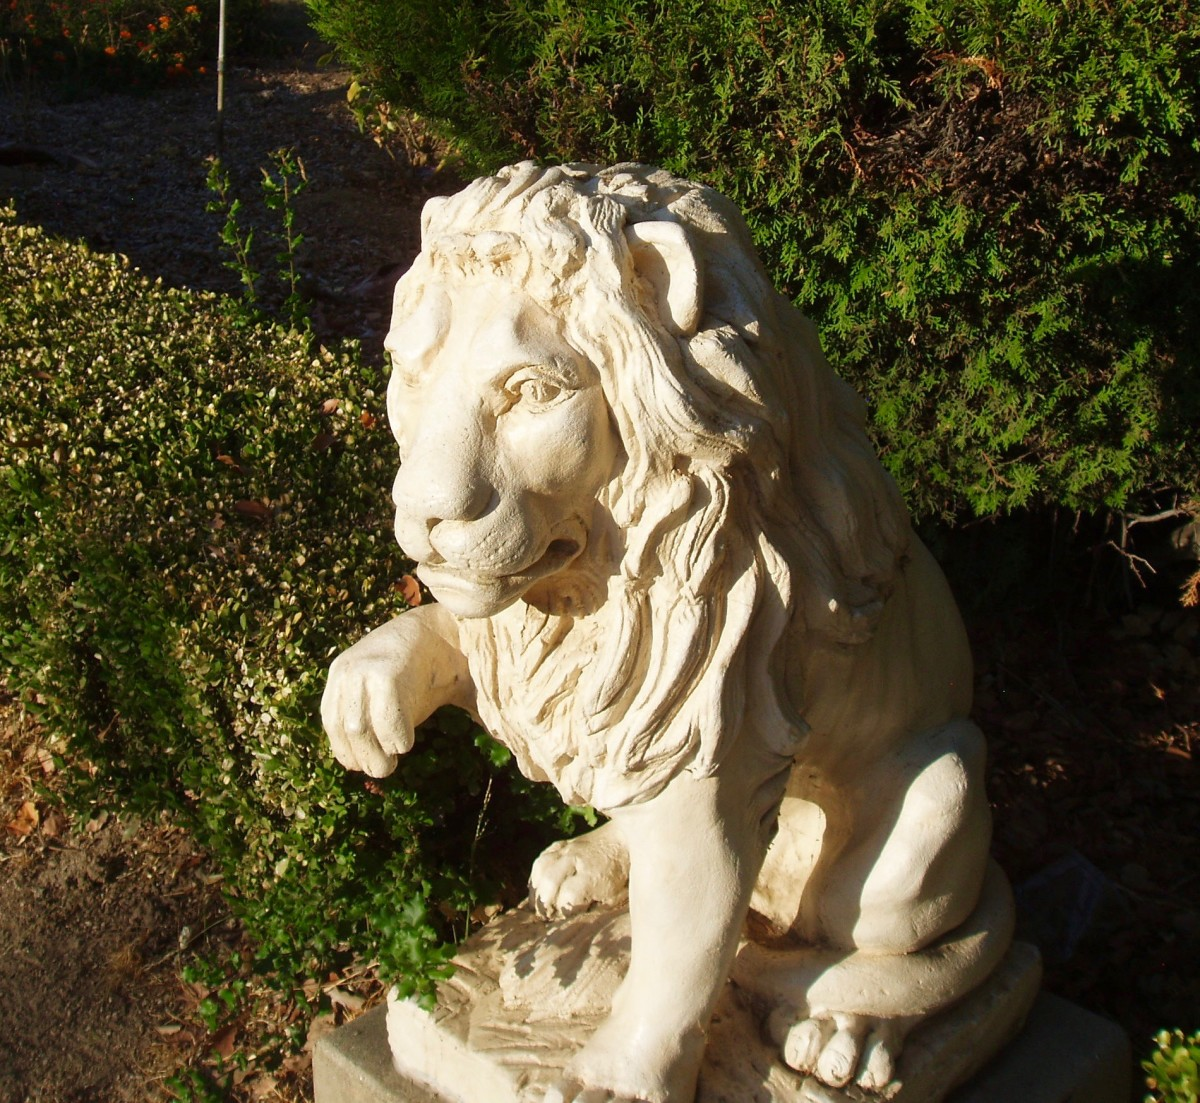 This is one of two lions placed at the entrance of a mansion in my neighborhood, one on either side of the front gate.